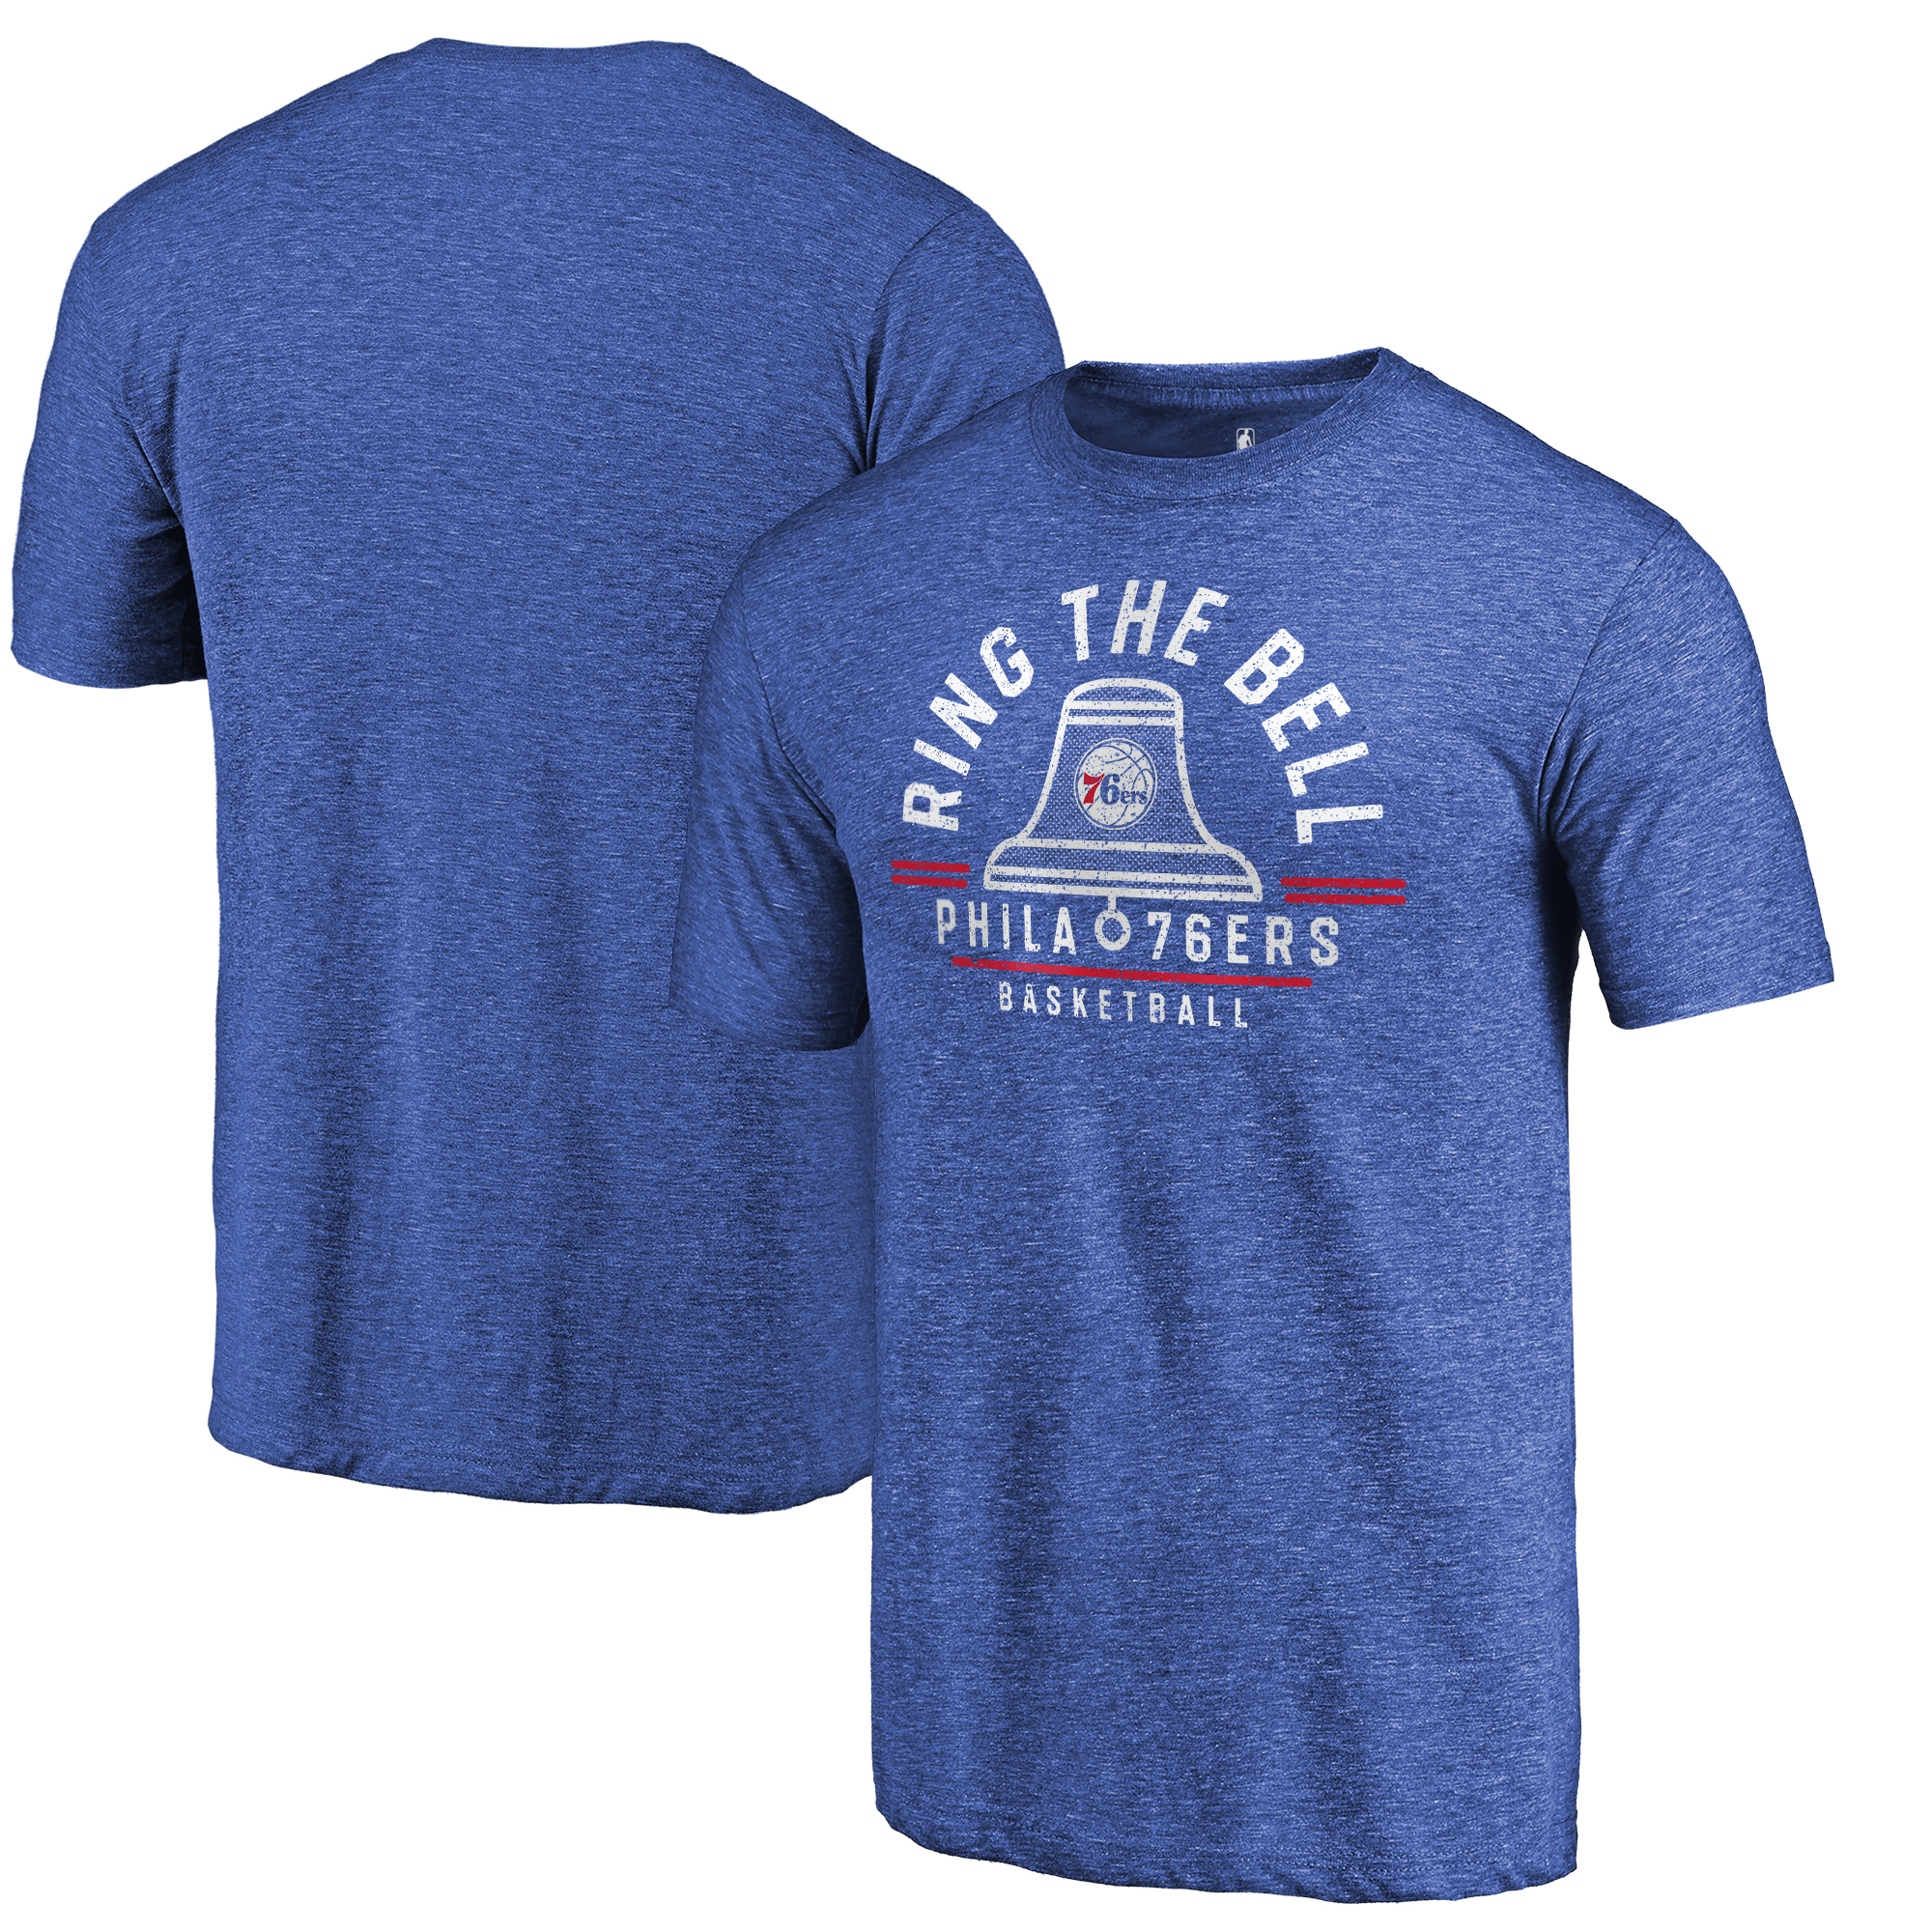 Philadelphia 76ers Fanatics Branded Hometown Collection Ring the Bell Tri-Blend T-Shirt - Royal